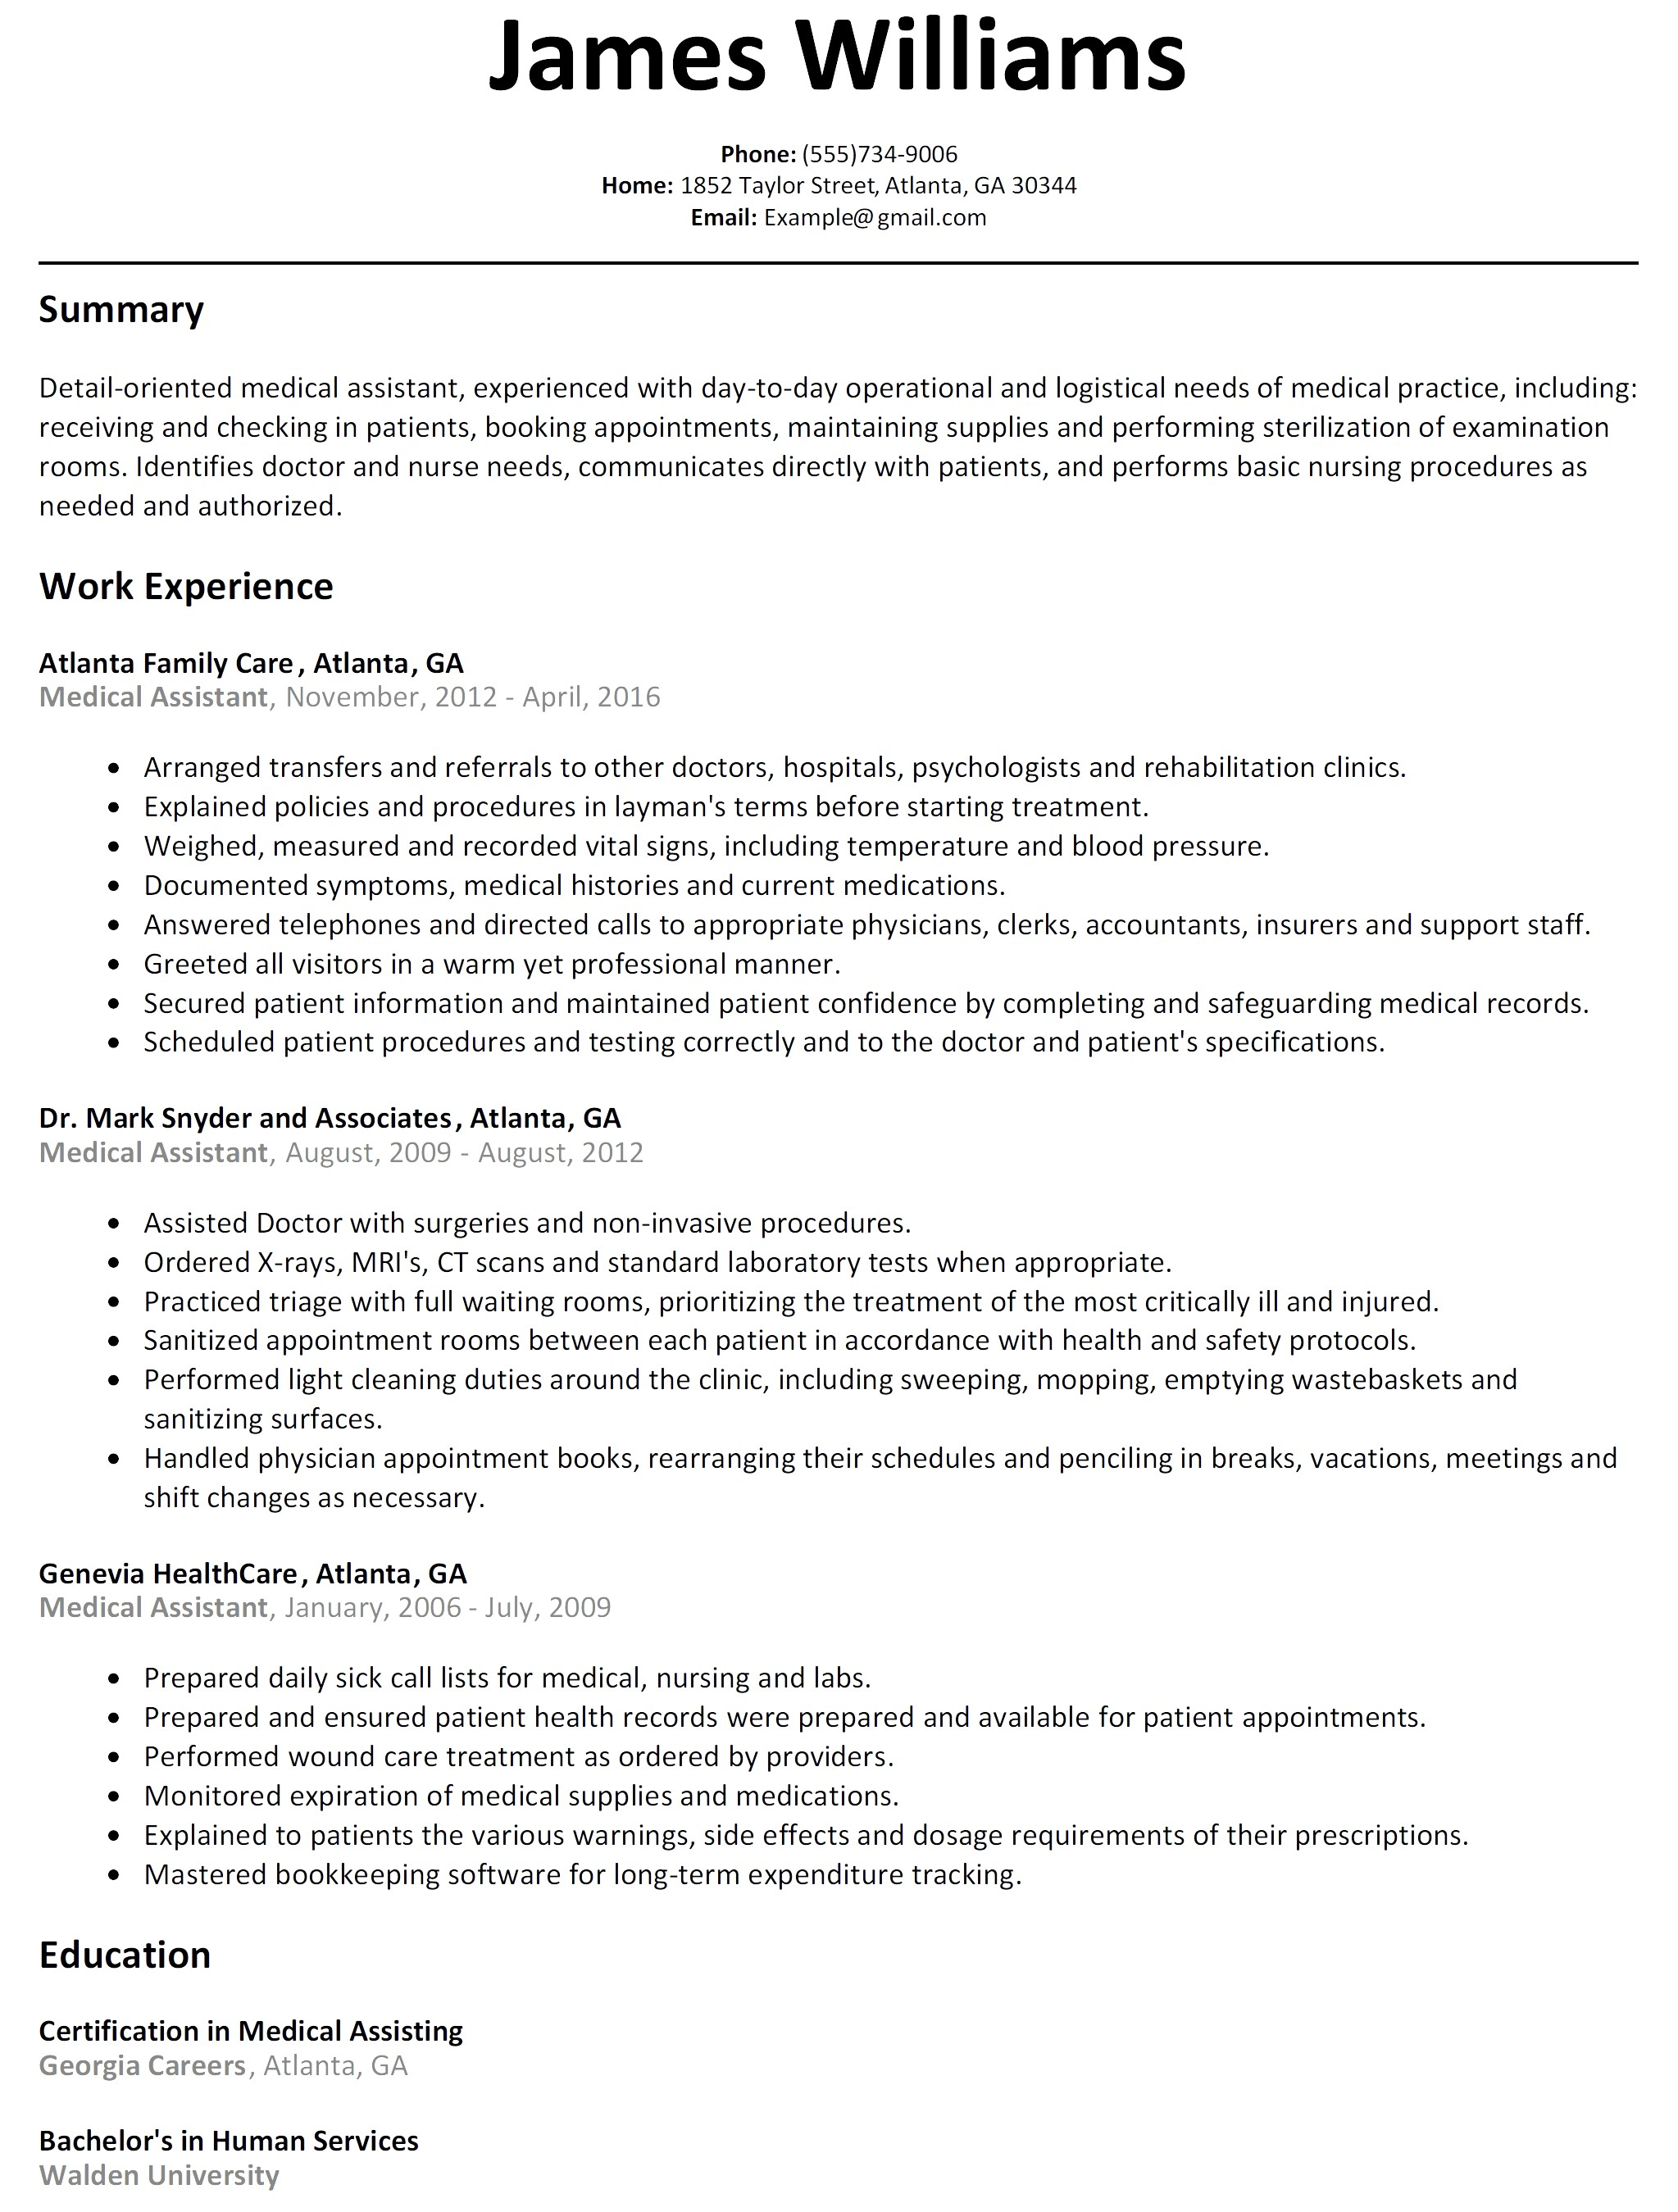 Entry Level Clinical Research Coordinator Resume - Clinical Research associate Resume Cmt sonabel